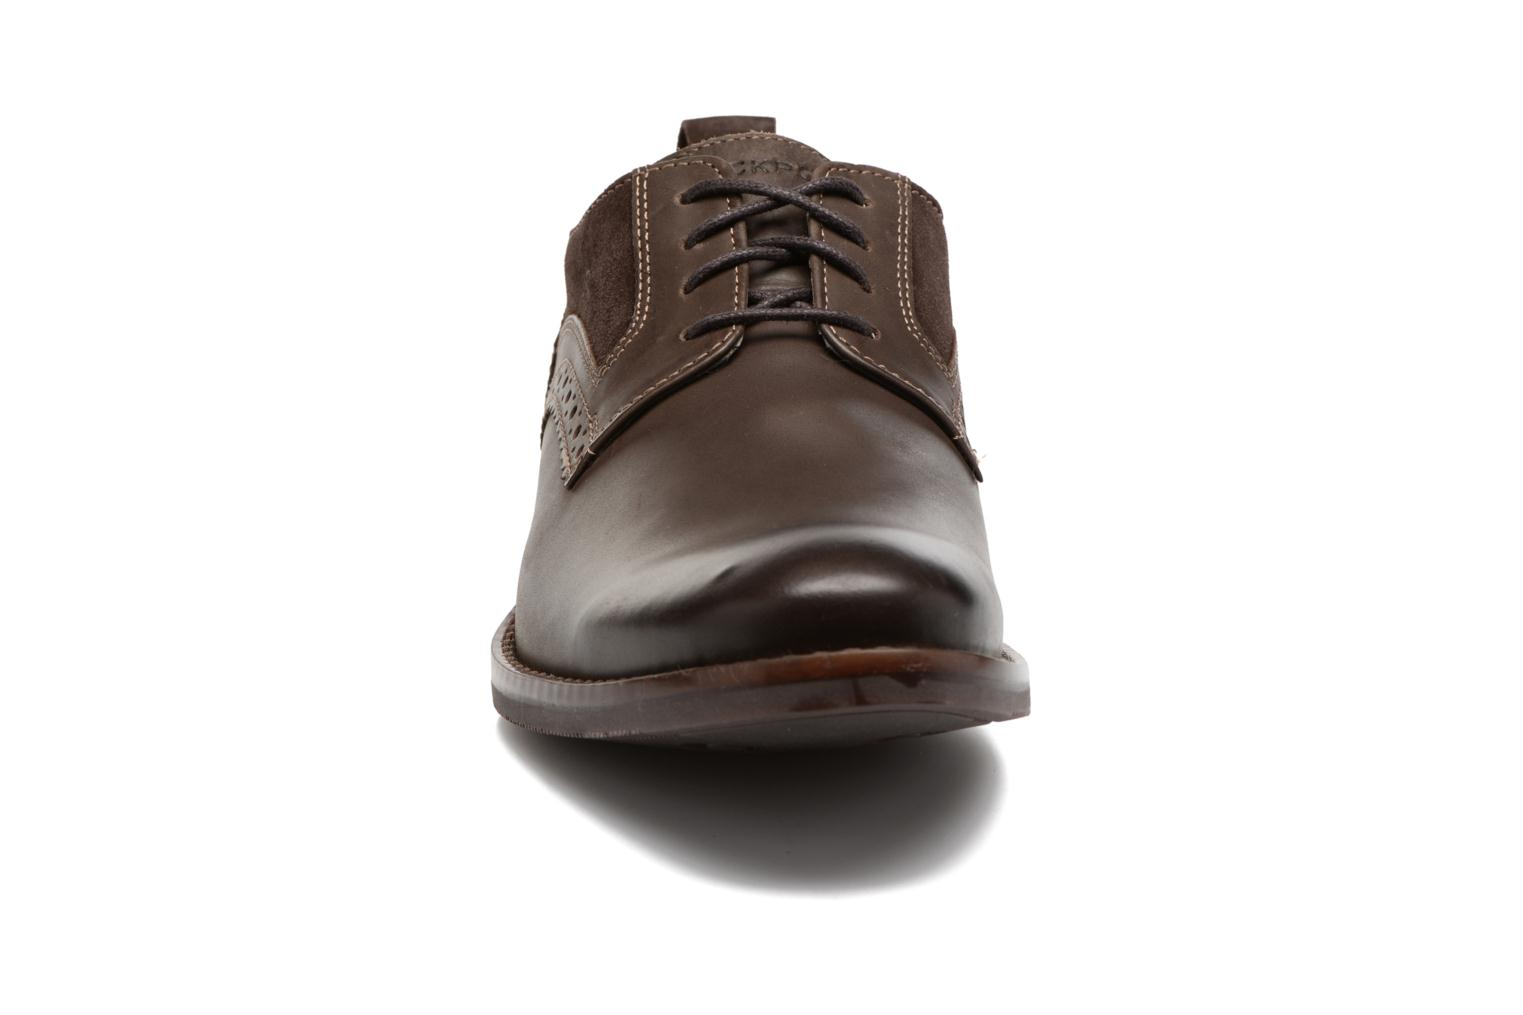 Wynstin Plain Toe Dark Bitter Chocolate